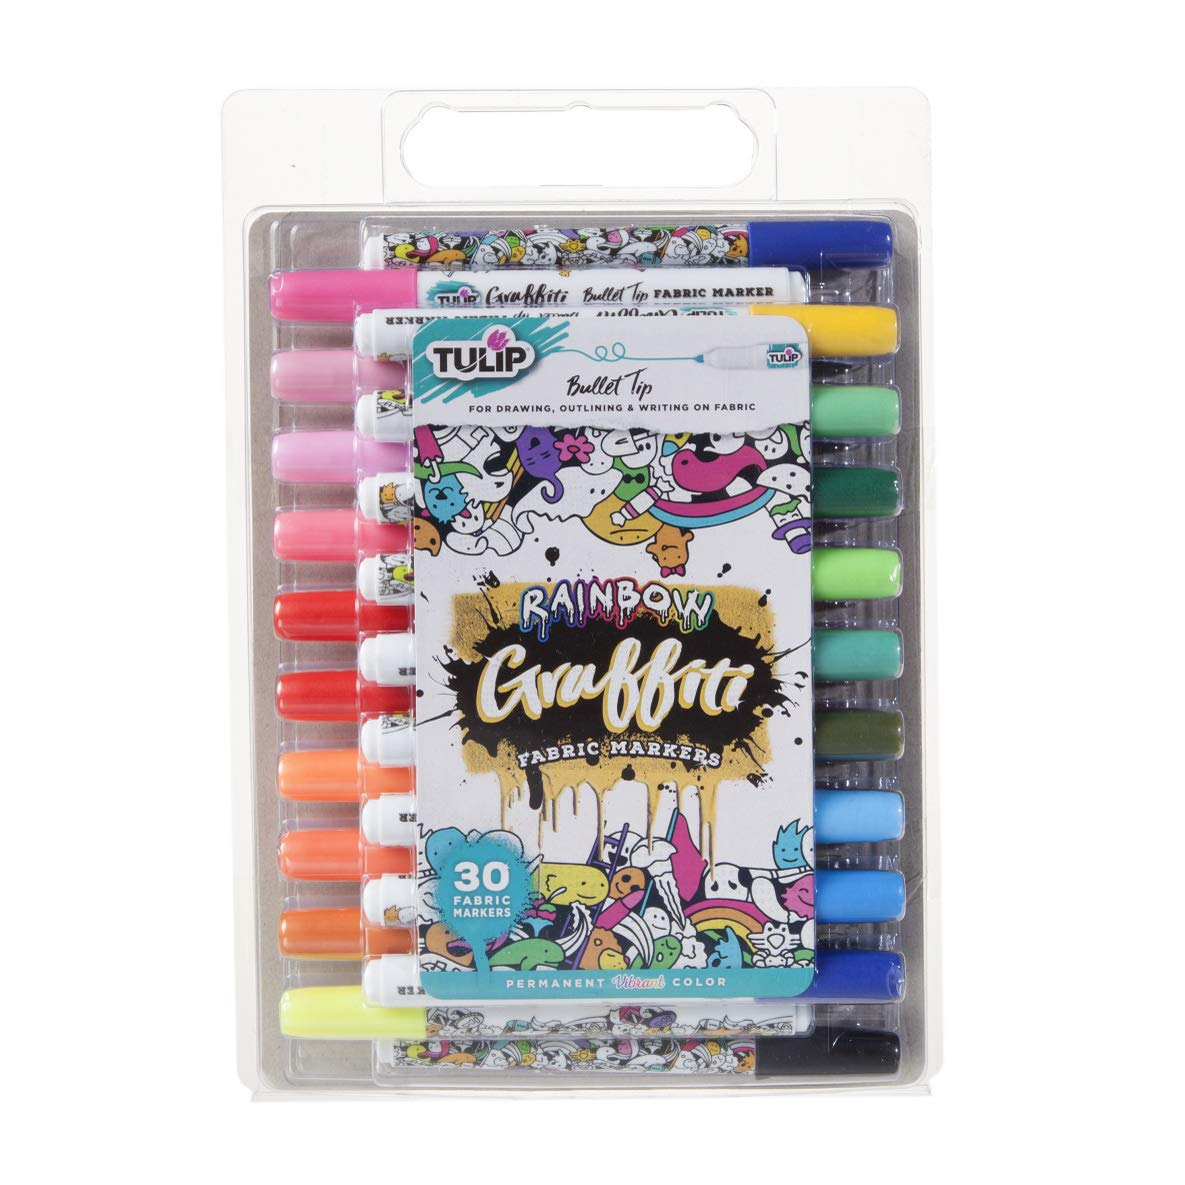 Tulip Graffiti Fabric Markers, 30 Pack - Bullet Tip, Rainbow by Tulip